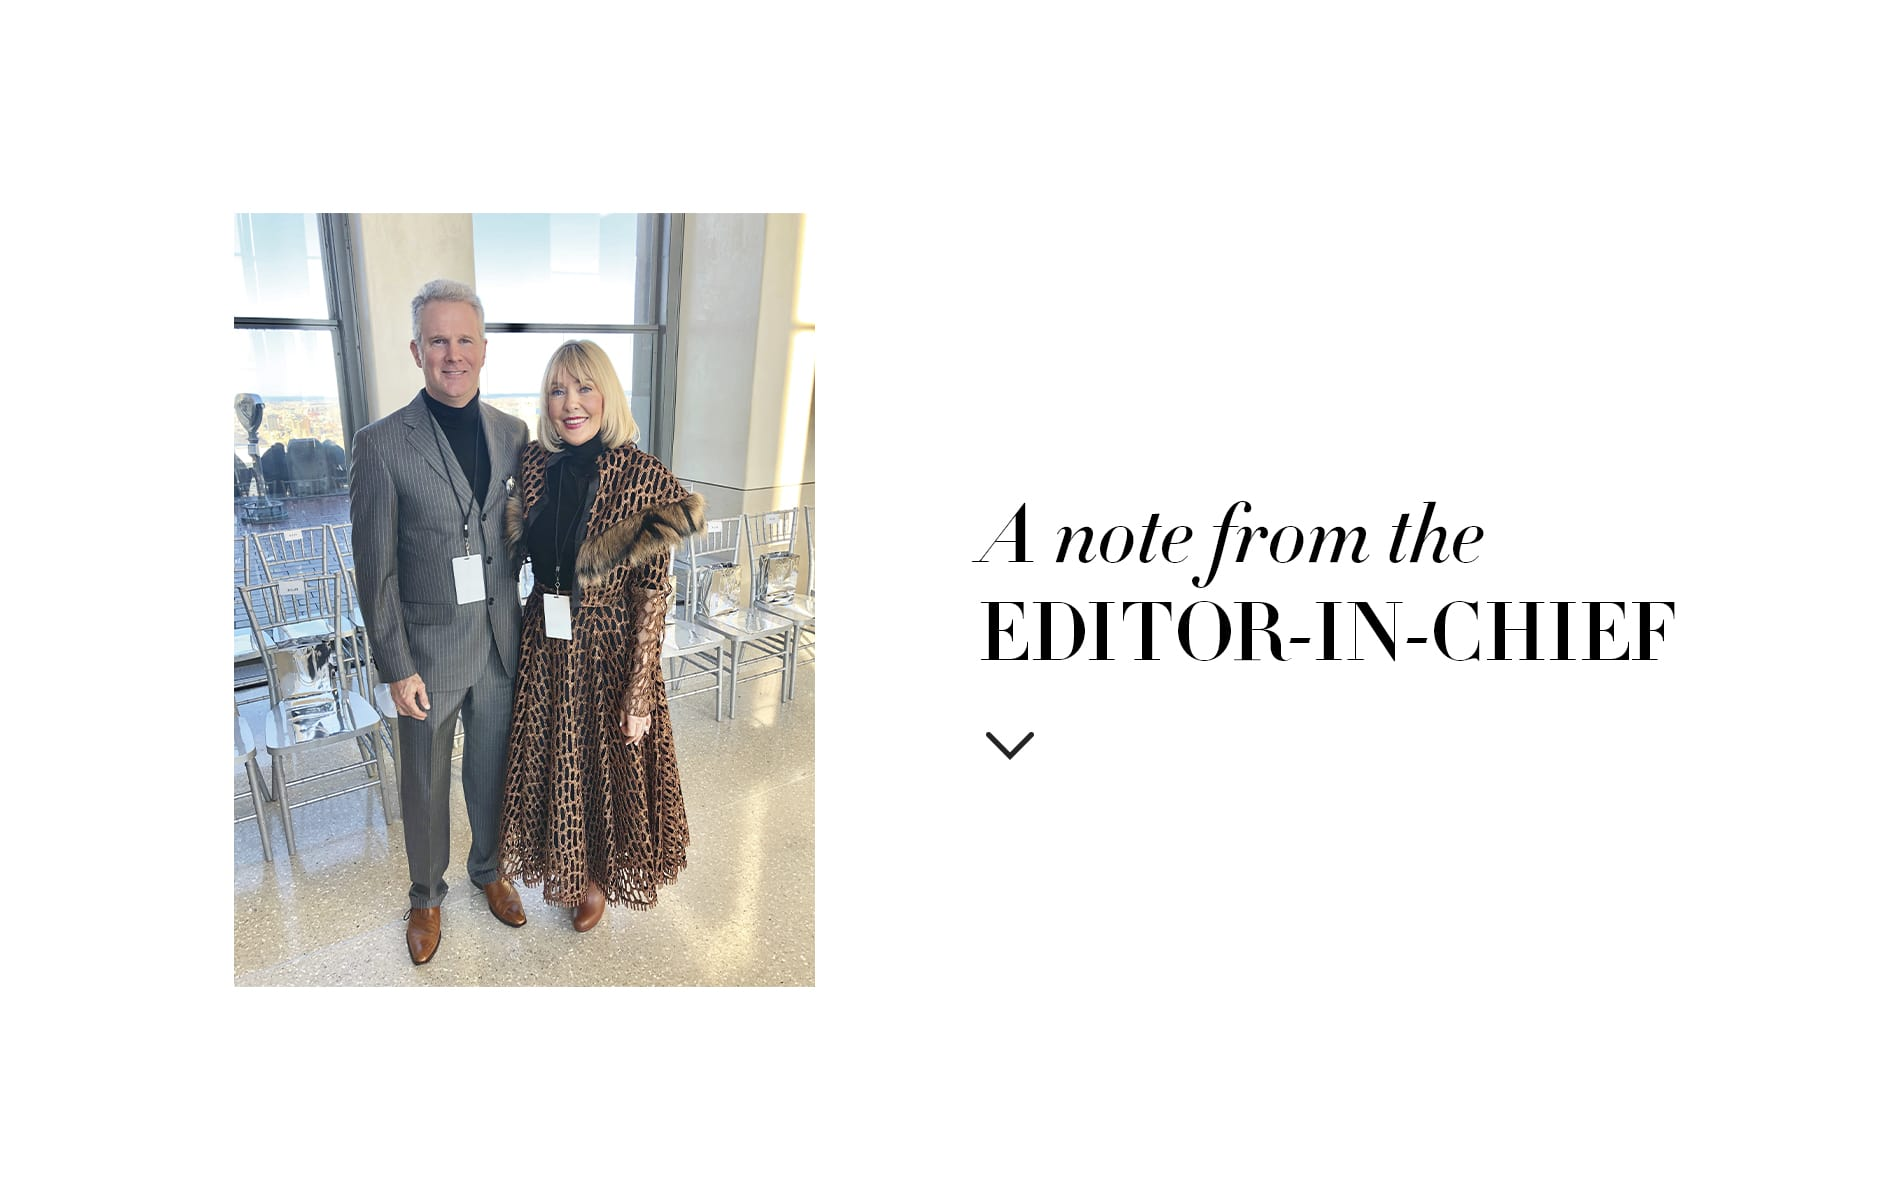 VIE publisher and editor-in-chief Gerald and Lisa Burwell attend Christian Siriano's Fall/Winter 2019 runway show at the Top of the Rock in New York City.